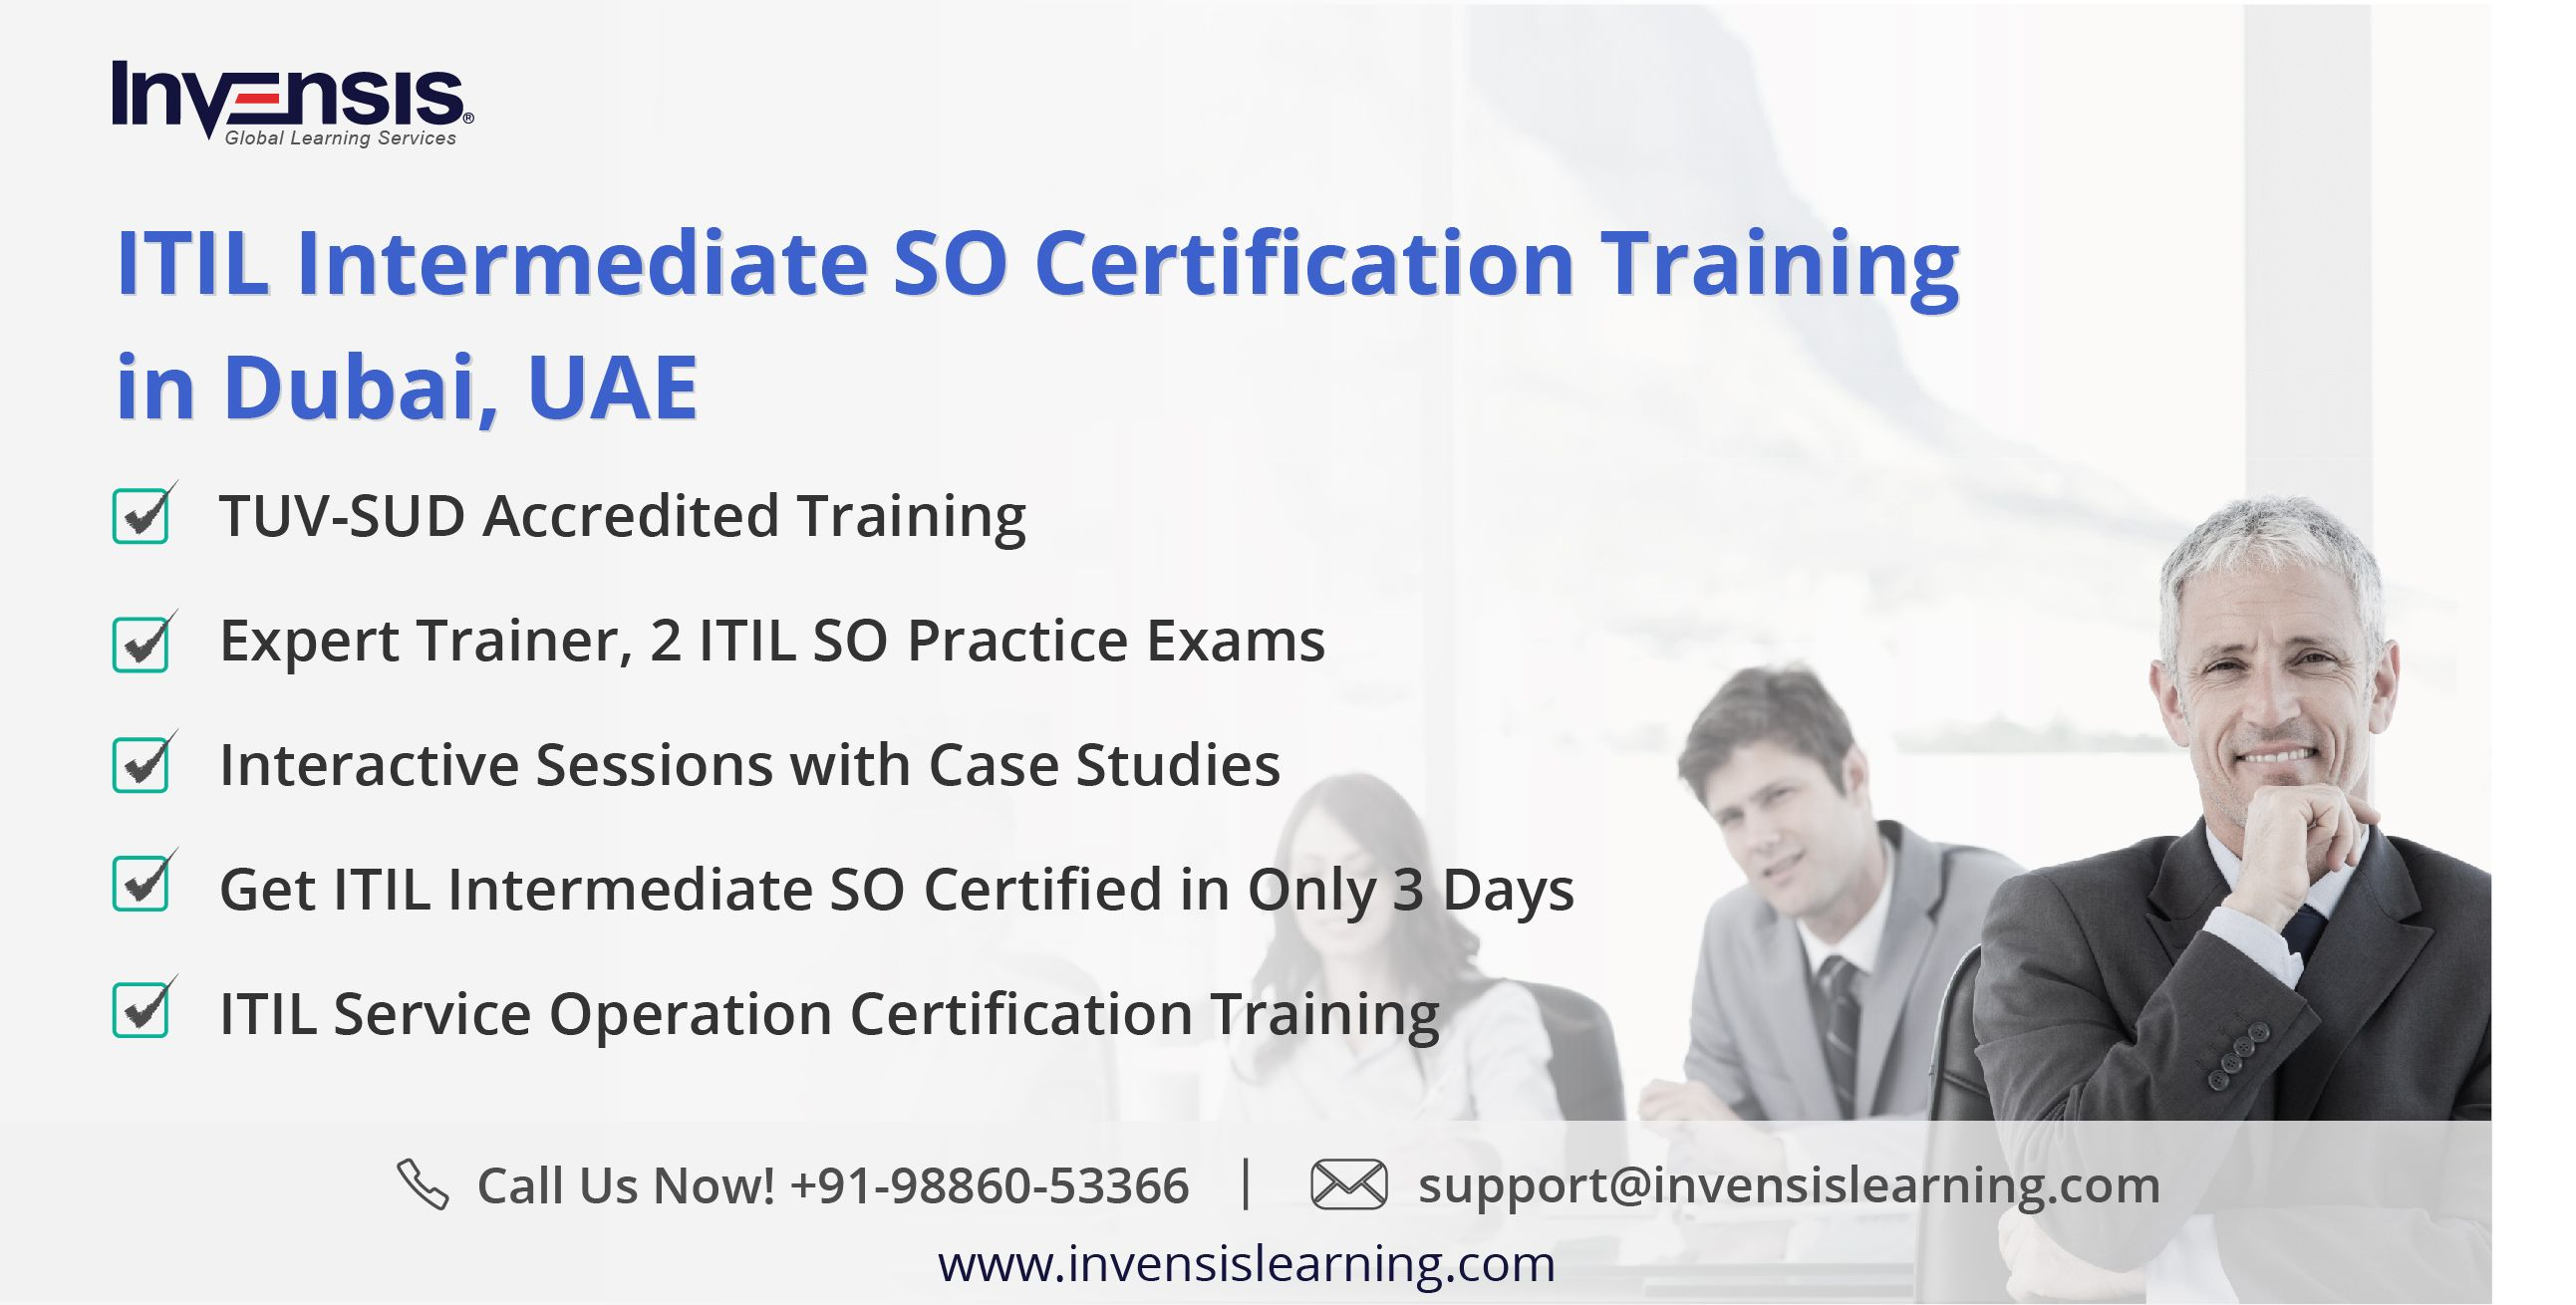 Itilintermediate service operation so certification training benefits of taking the course tuv sud accredited training and course content expert trainer 2 itil service operation practice tests interactive 1betcityfo Images